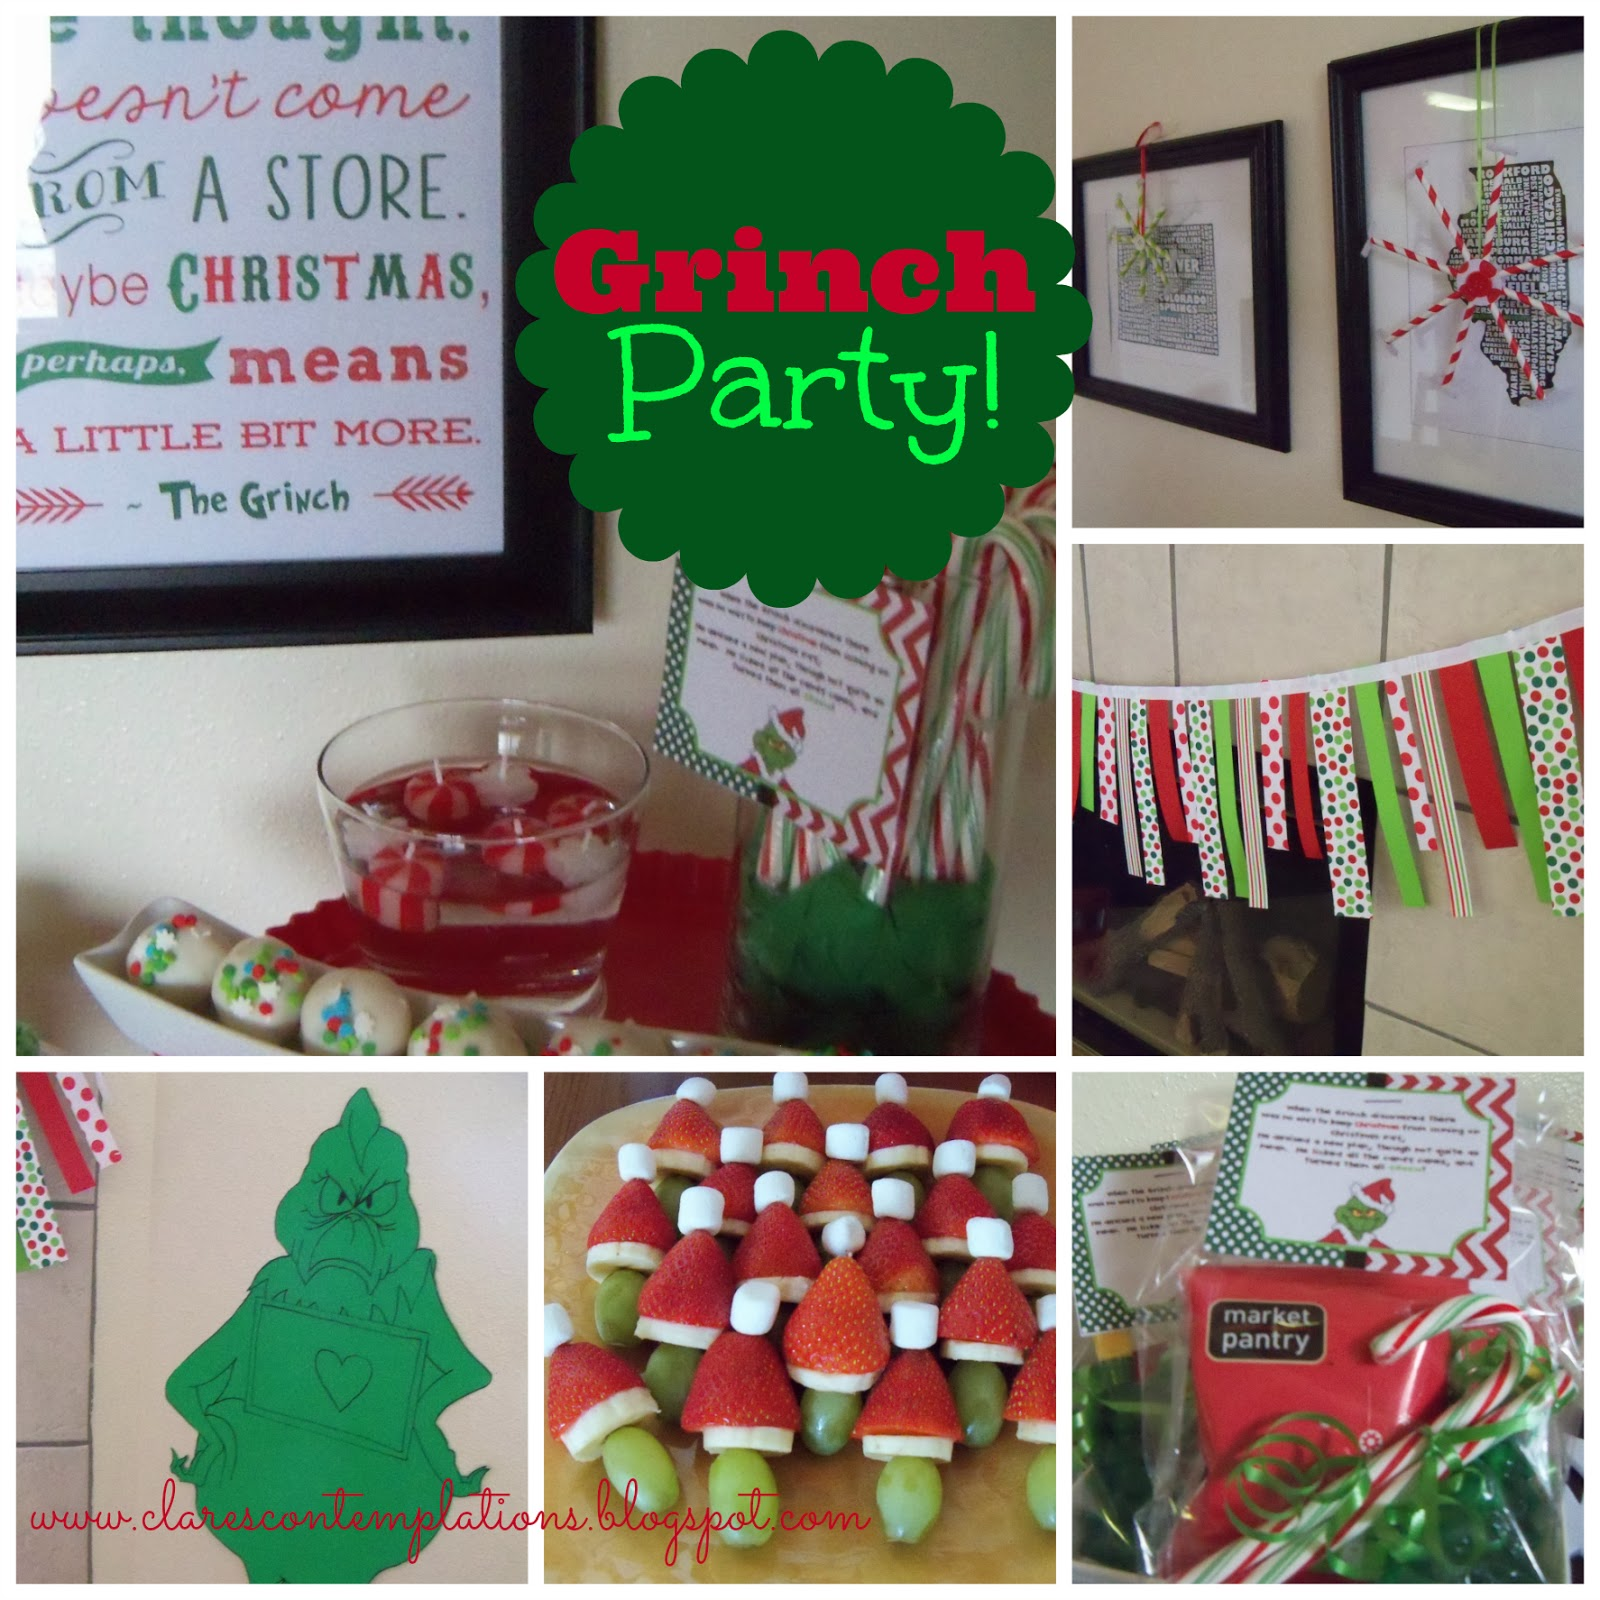 Christmas Decorations For A Party: Clare's Contemplations: Great Grinch Party